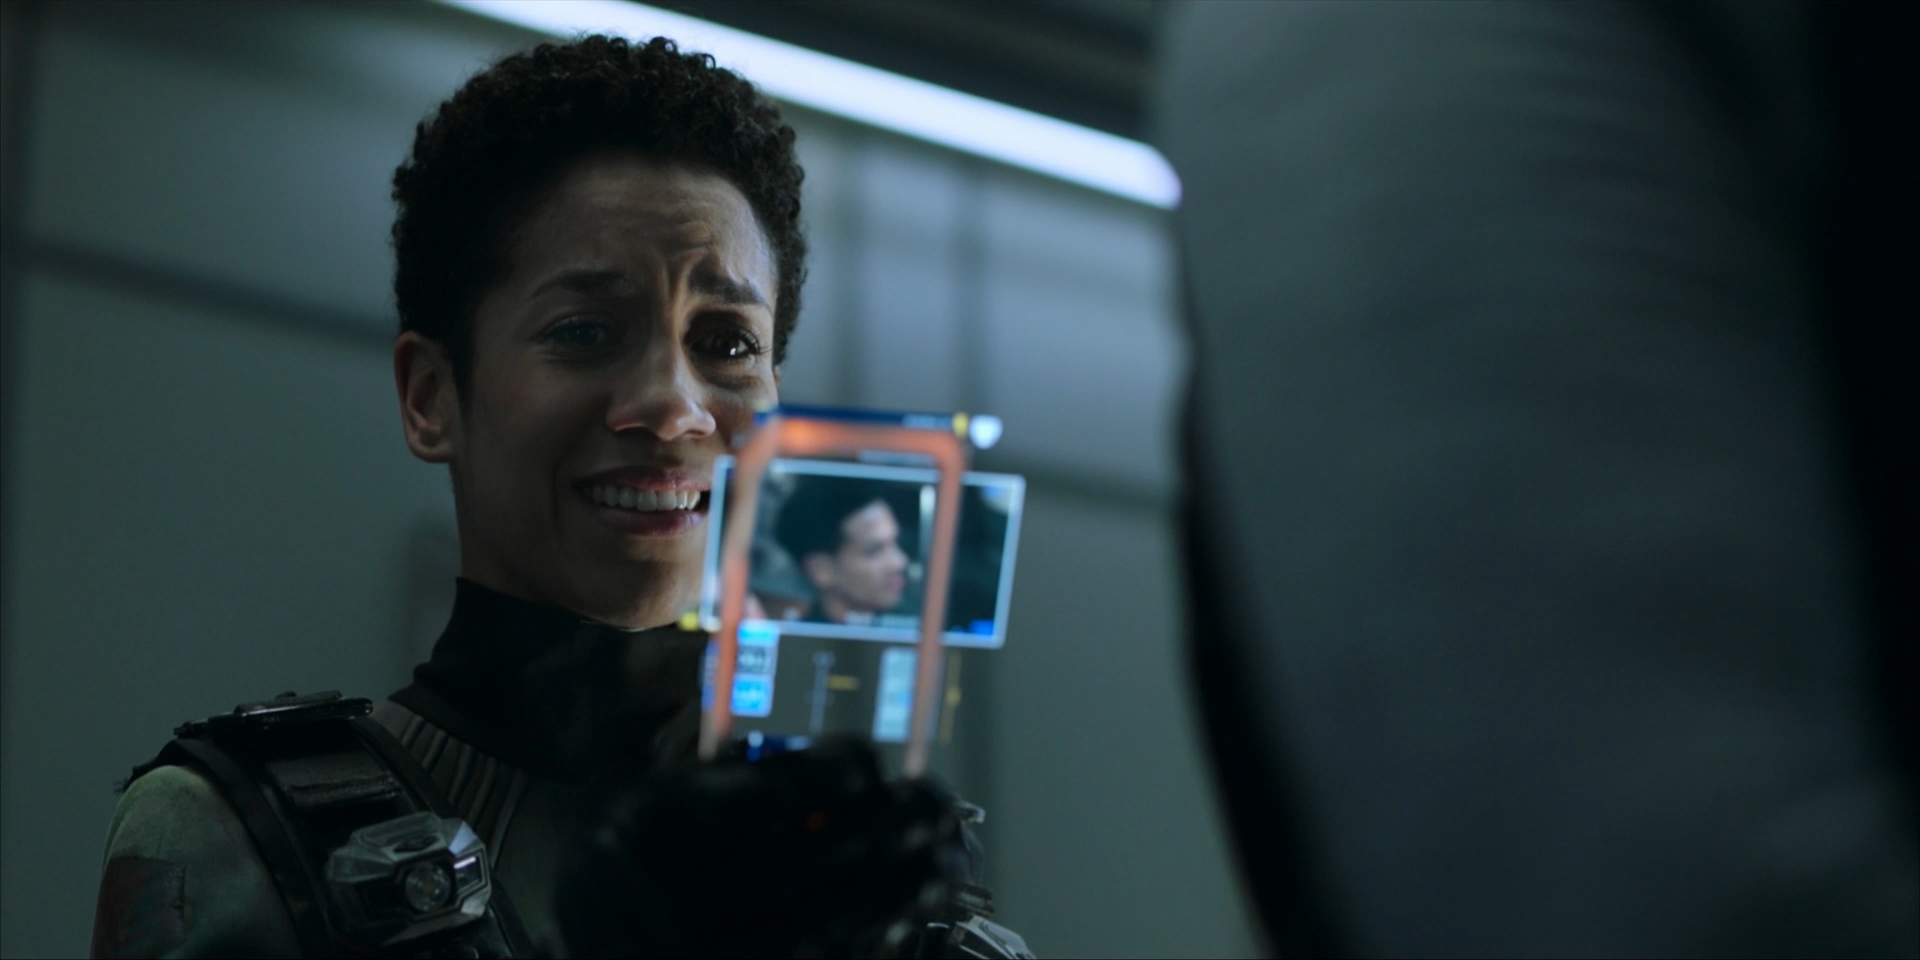 1080p_UHD The.Expanse.S05E01_ideafilm_Spin City33.mp4_snapshot_13.04.700.png